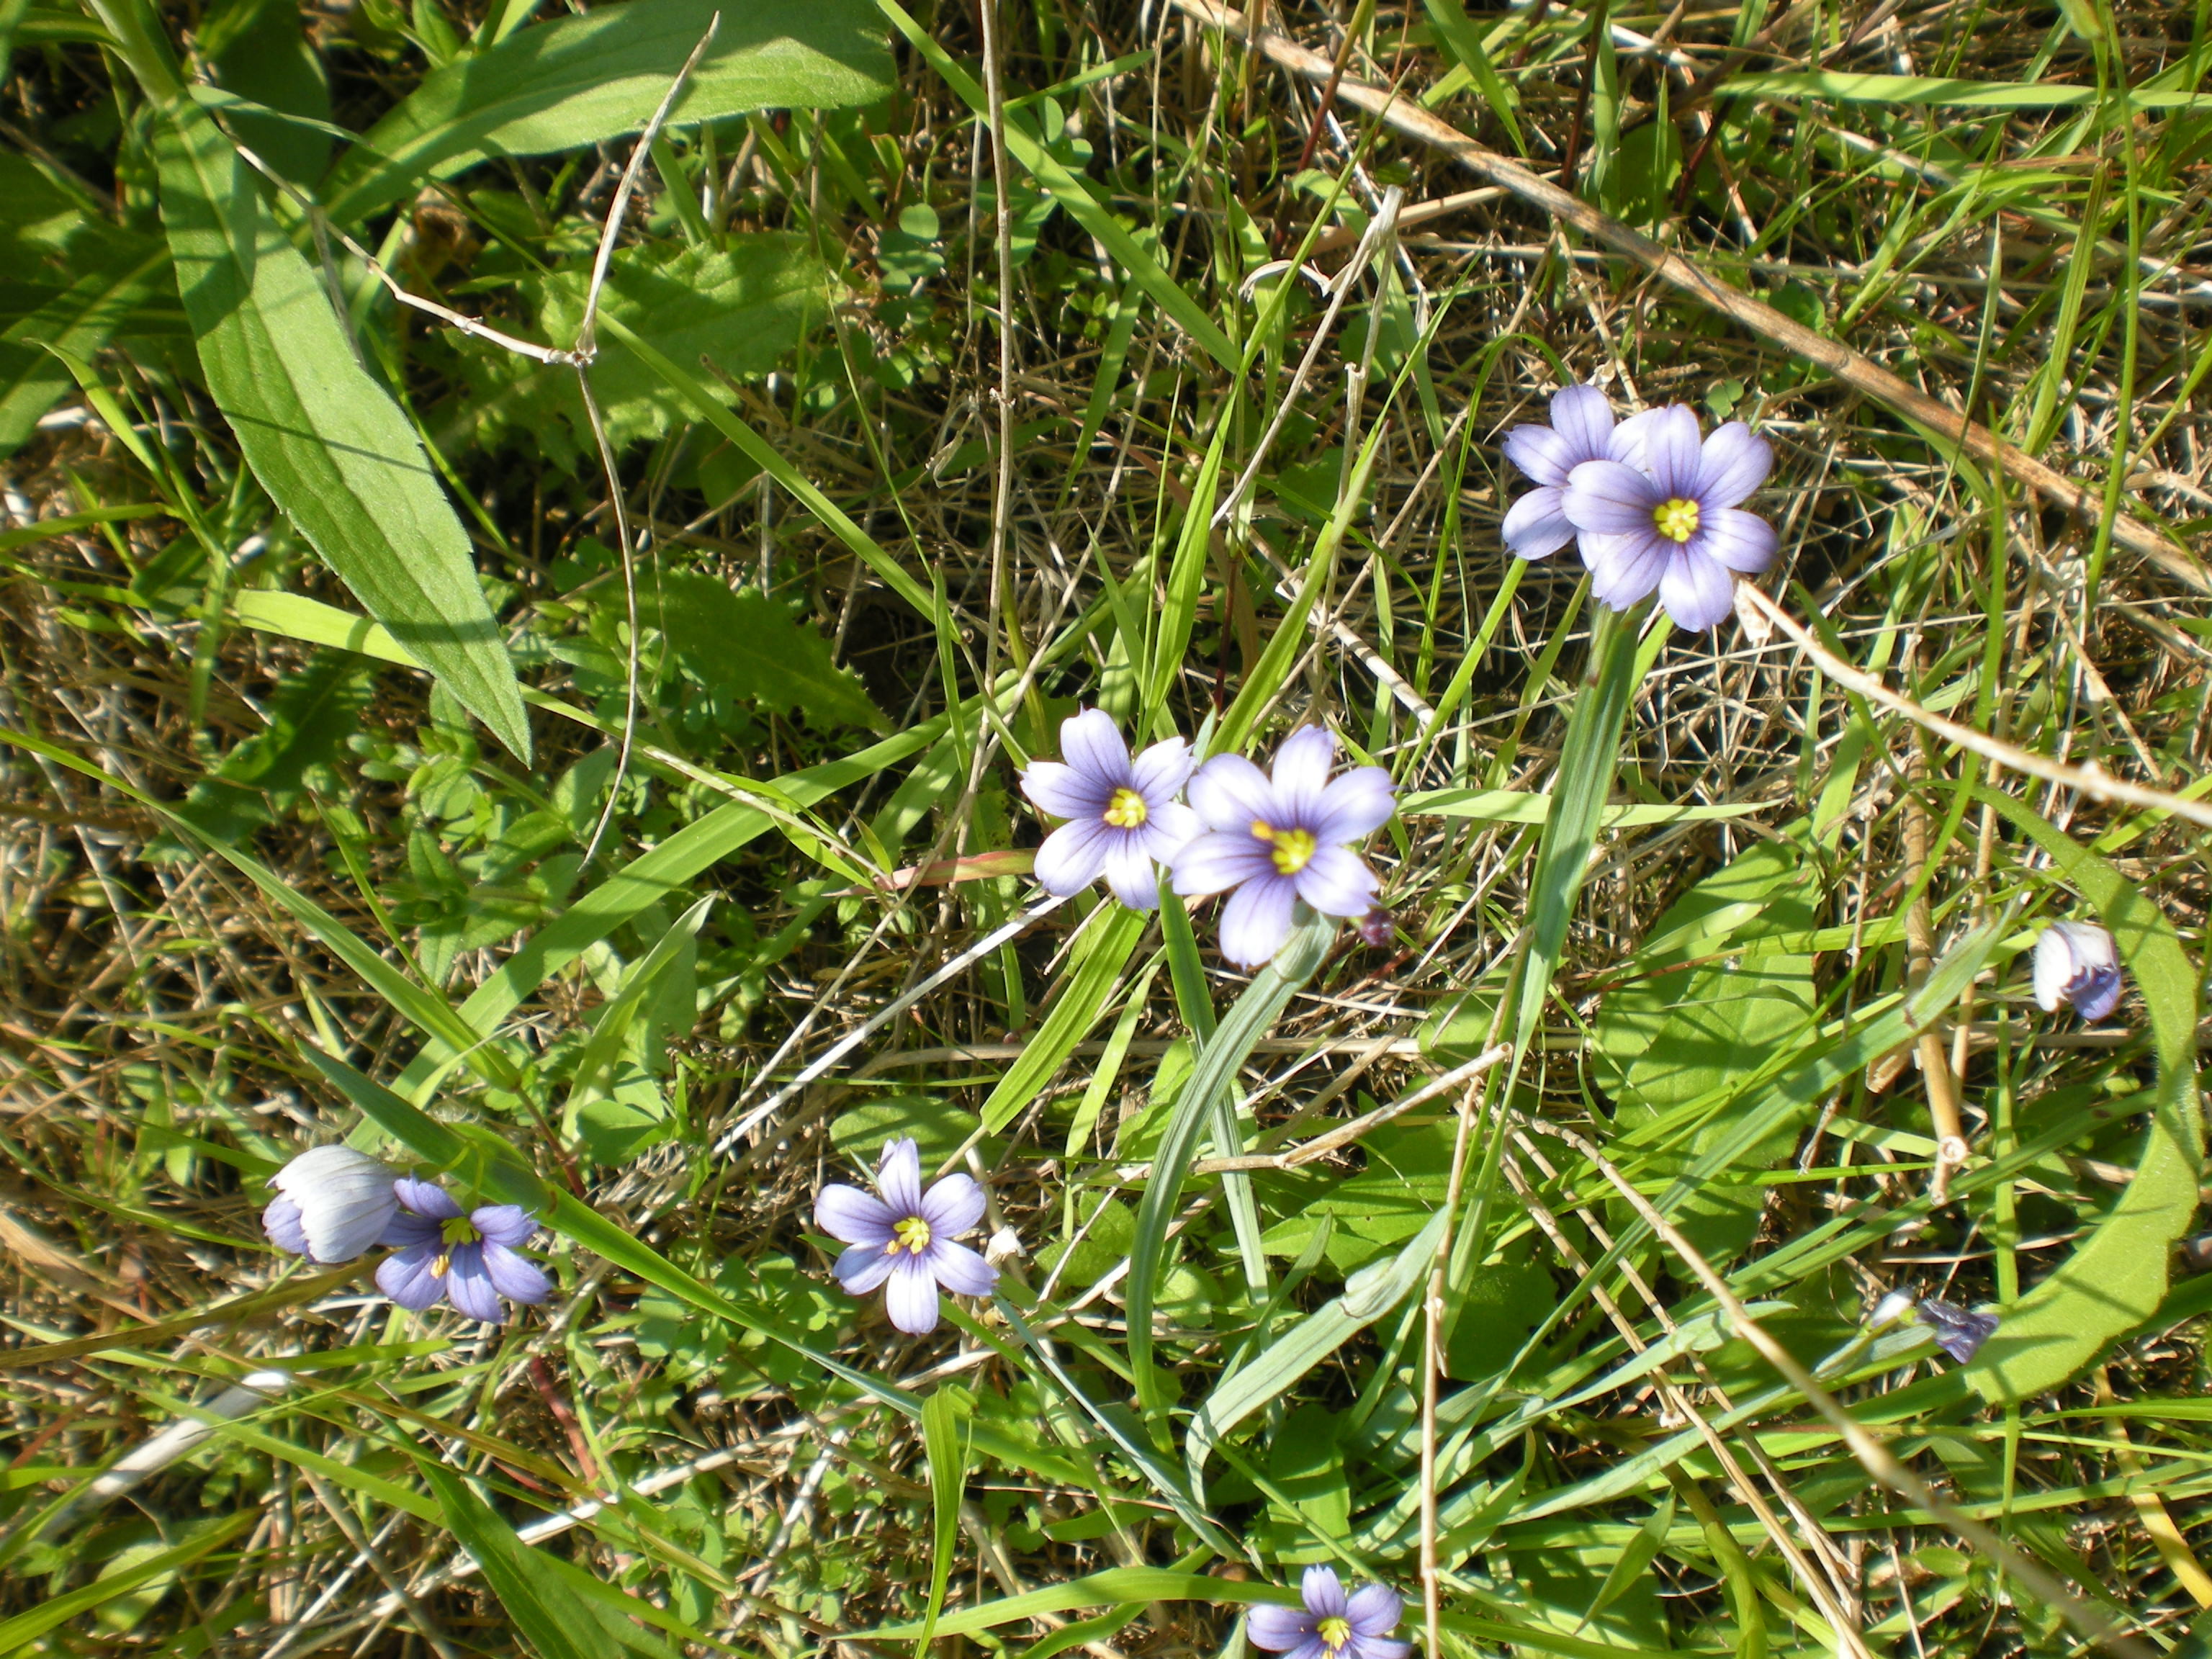 Blue-eyed grass, a member of the iris family